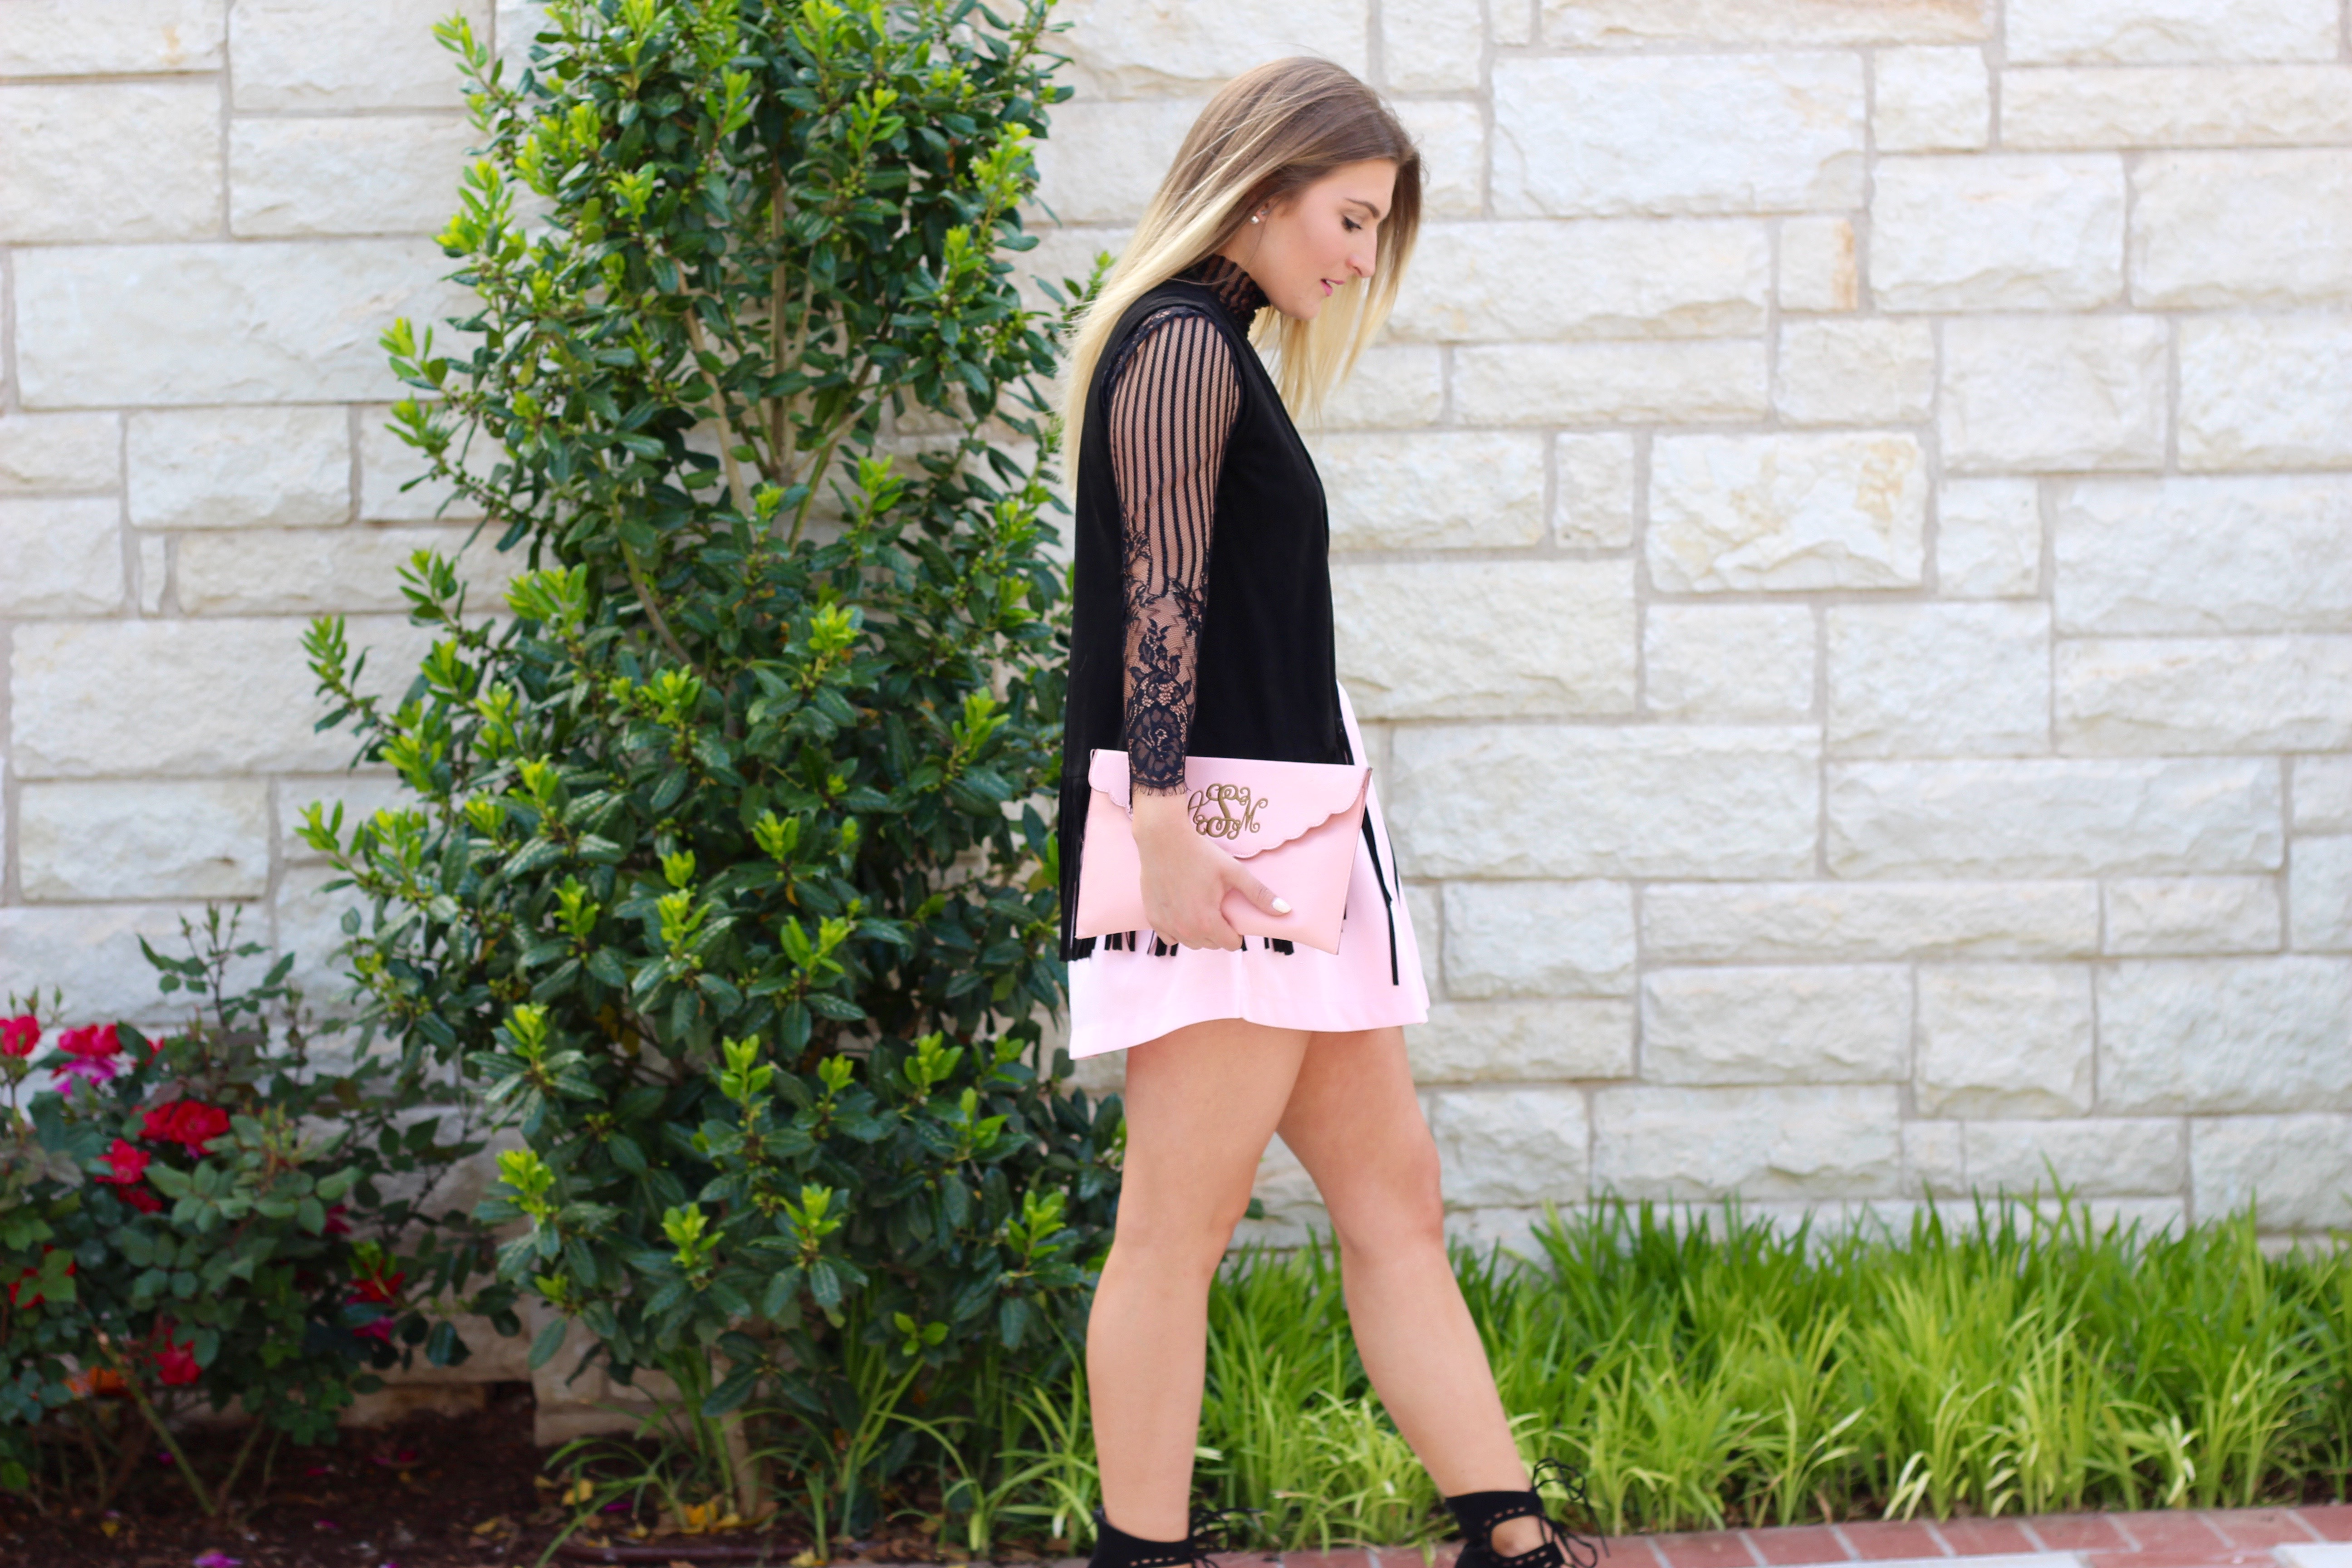 lingerie and a girly skirt - Lingerie Outfit By Day by popular Texas fashion blogger Audrey Madison Stowe